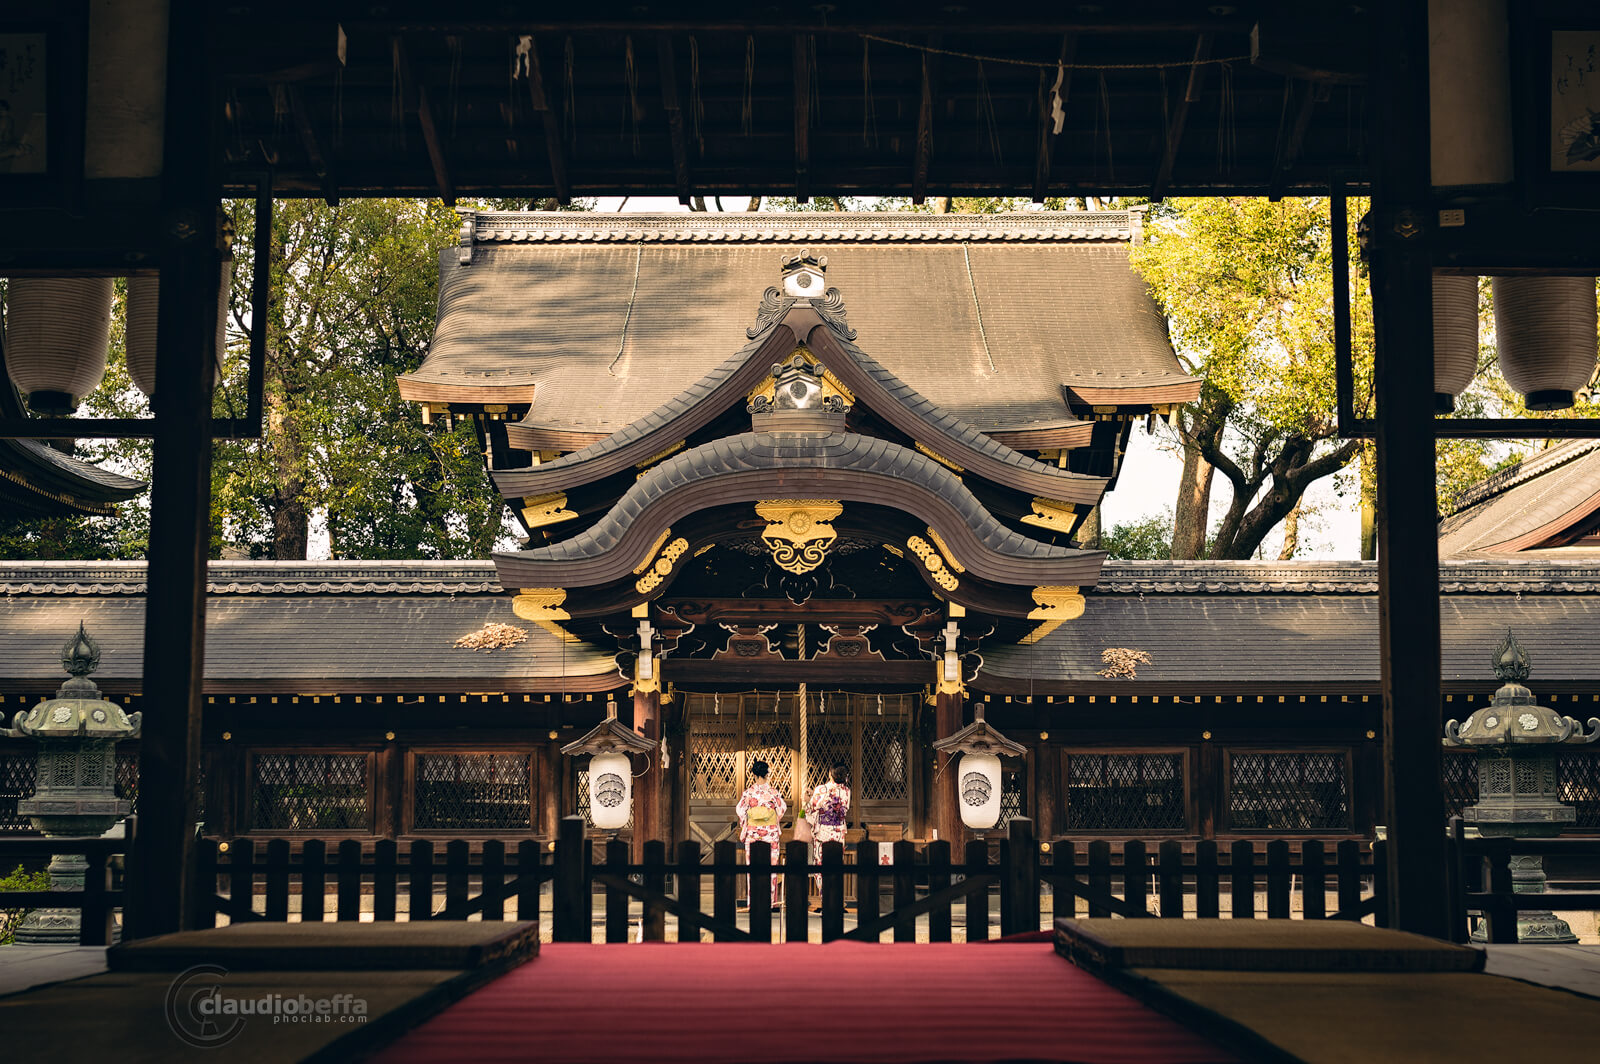 Visit to the shrine, Shrine, Shinto, Kimono